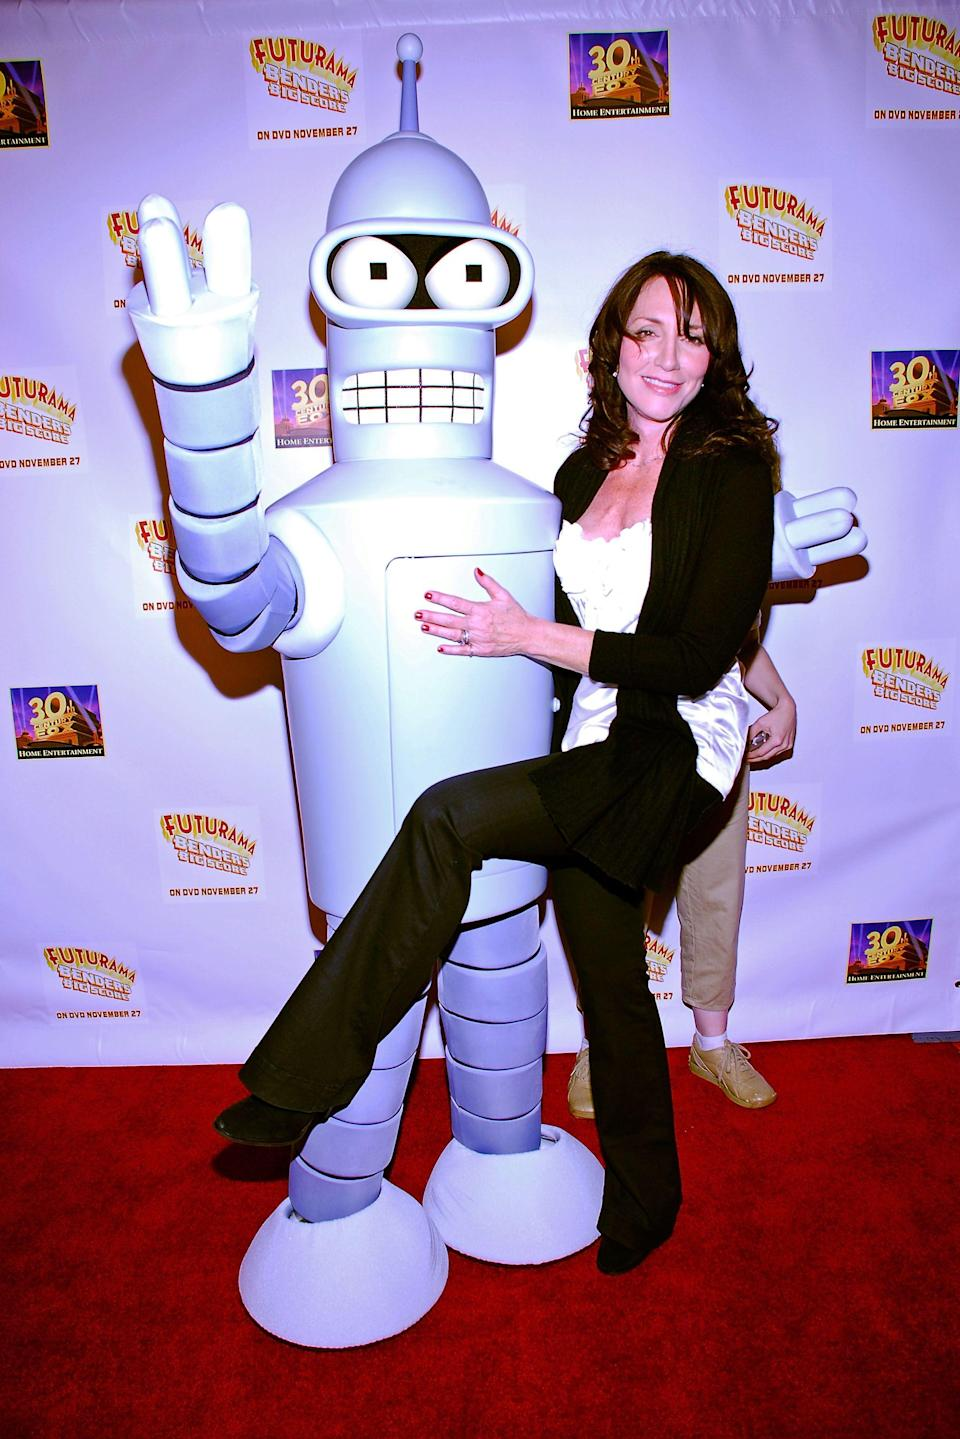 <p>For some animated movies and TV shows, producers and directors tap A-listers to bring their characters to life. Even award winning actors pick up voice acting roles, which just requires some time in the recording booth instead of hours on set in full costume. These opportunities often allow actors to play something totally against the parts they are typically cast in. Here are some of the talented actors who lend their voices to some of our favorite animated characters...</p>